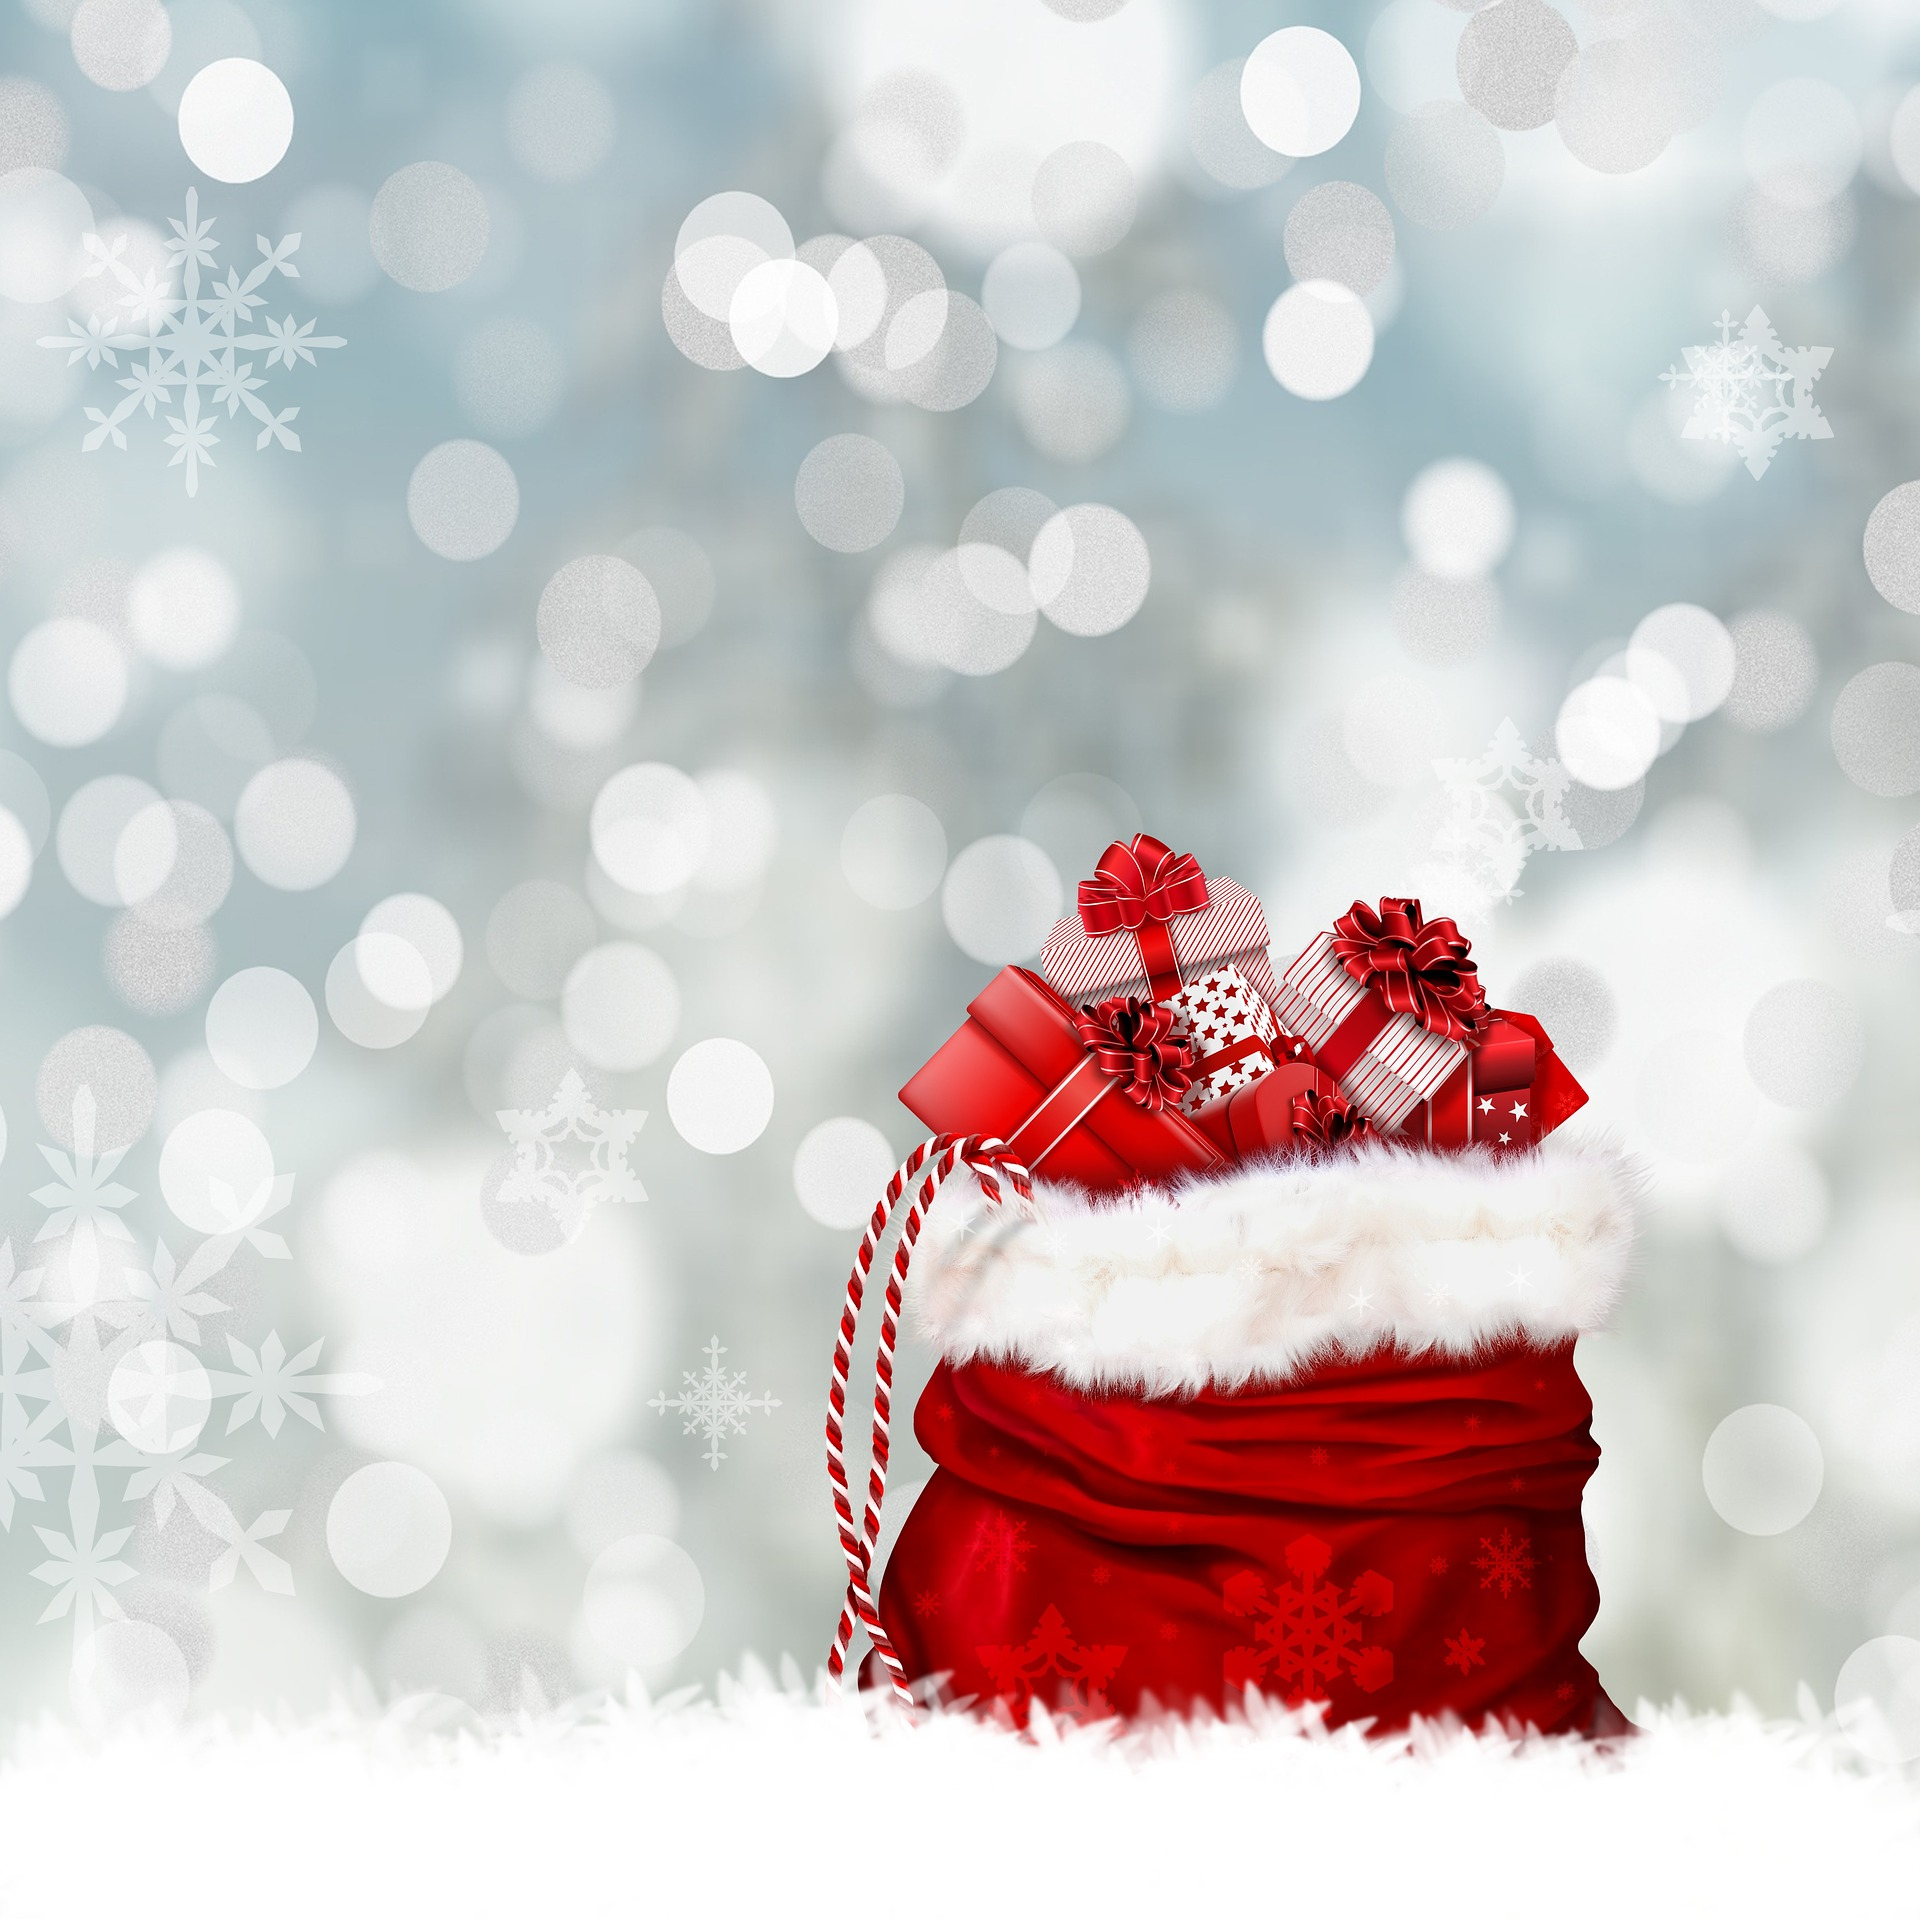 Best Wishes For This Christmas│Beautiful Christmas SMS | Todaytip.net